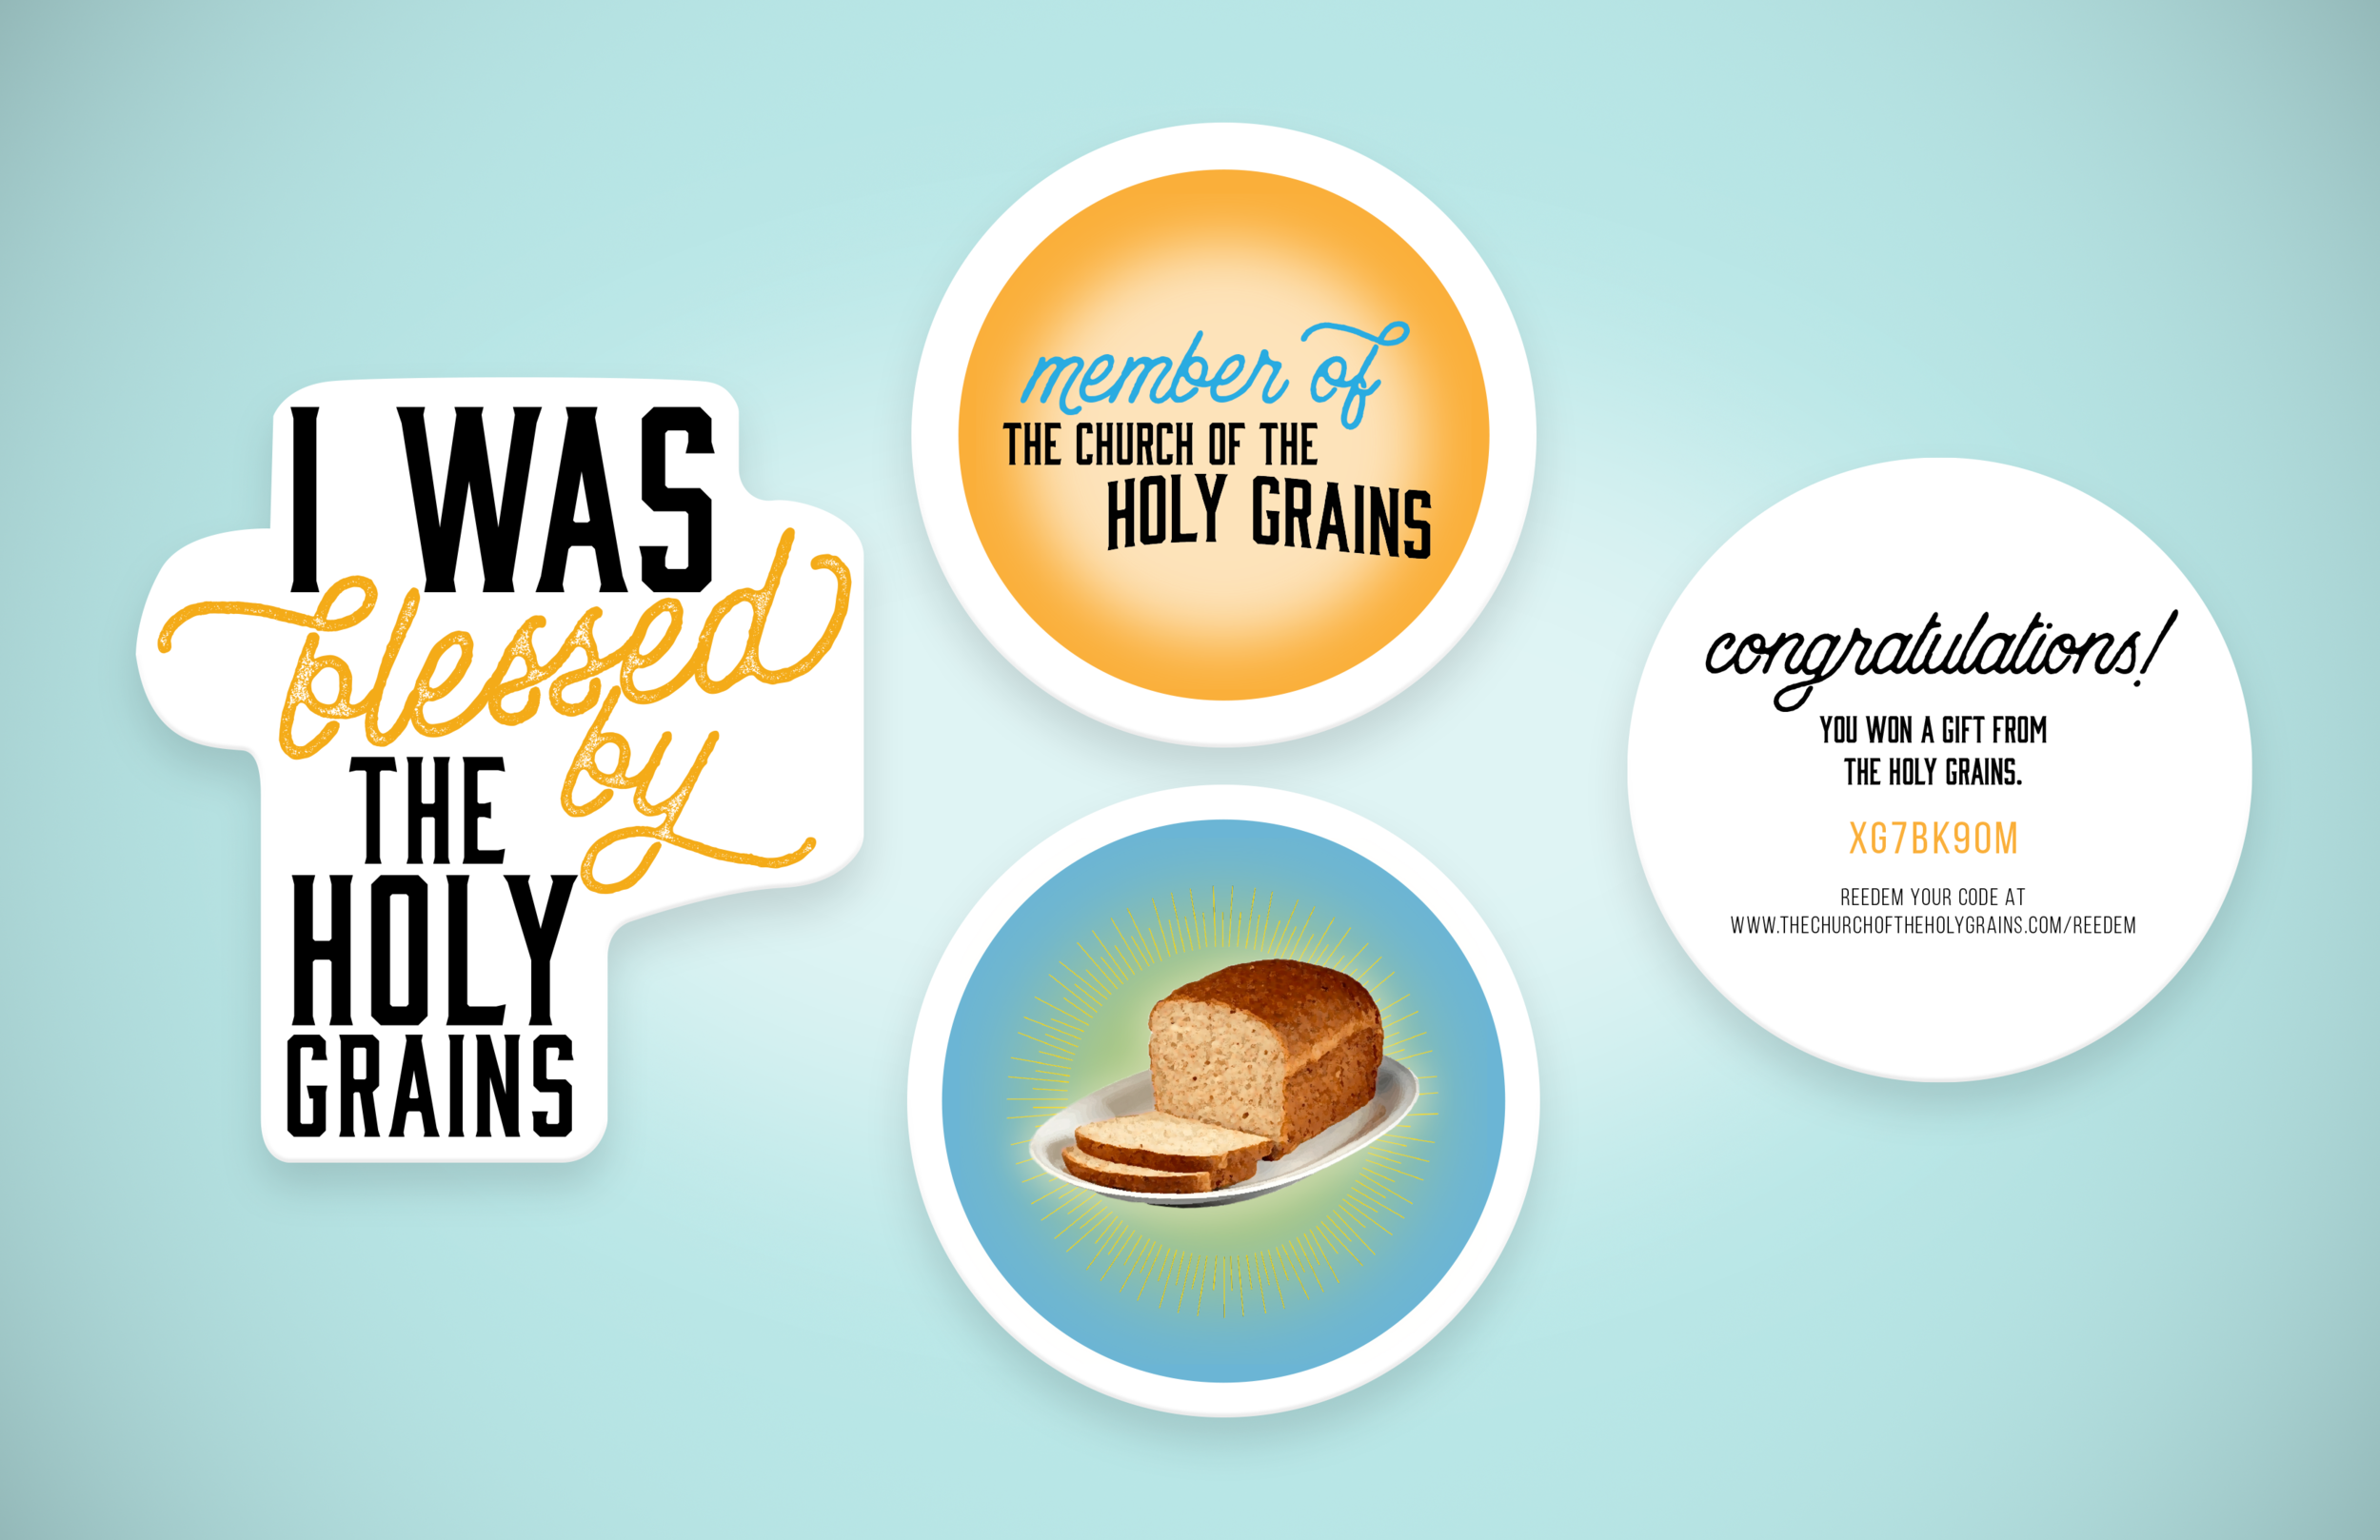 Stickers will be placed inside Ezekiel 4:9 packaging. On some stickers, there will be a code to redeem special items like t-shirts, pins and bracelets from the Church of the Holy Grains website.